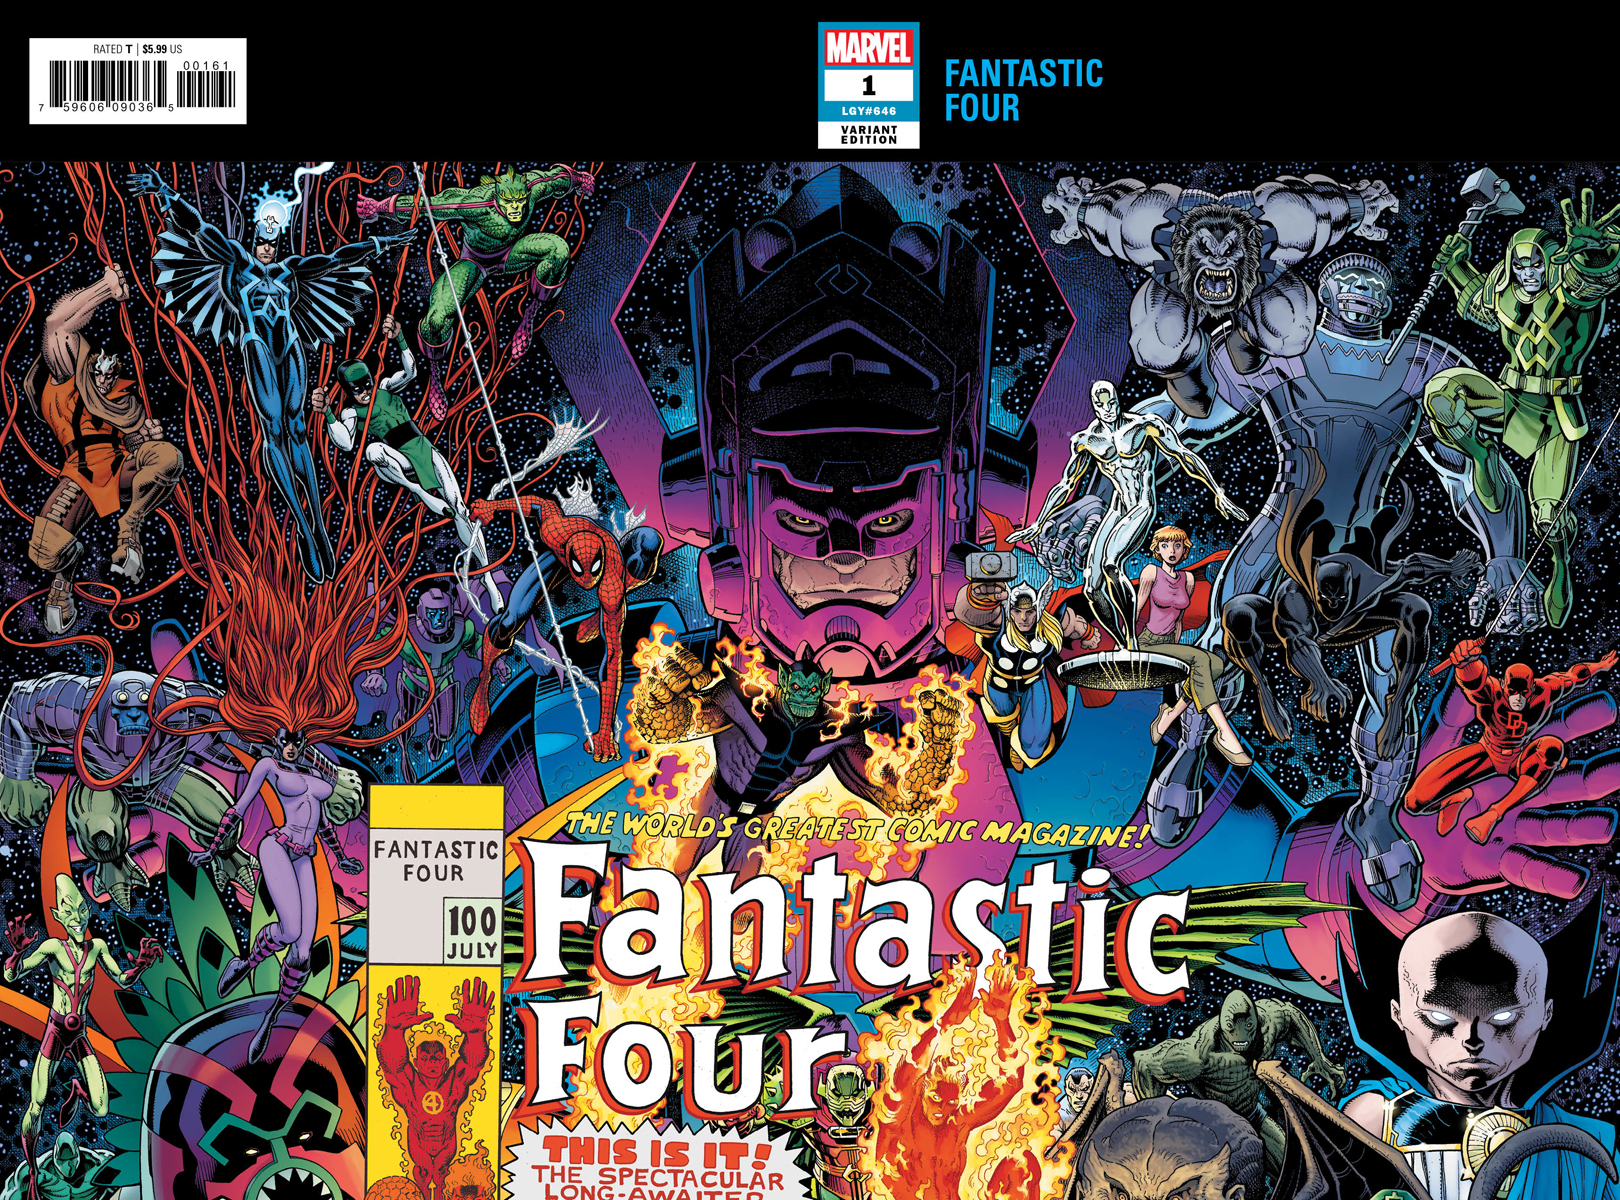 Fantastic Four Vol 6 1 Adams Connecting Wraparound Variant.jpg